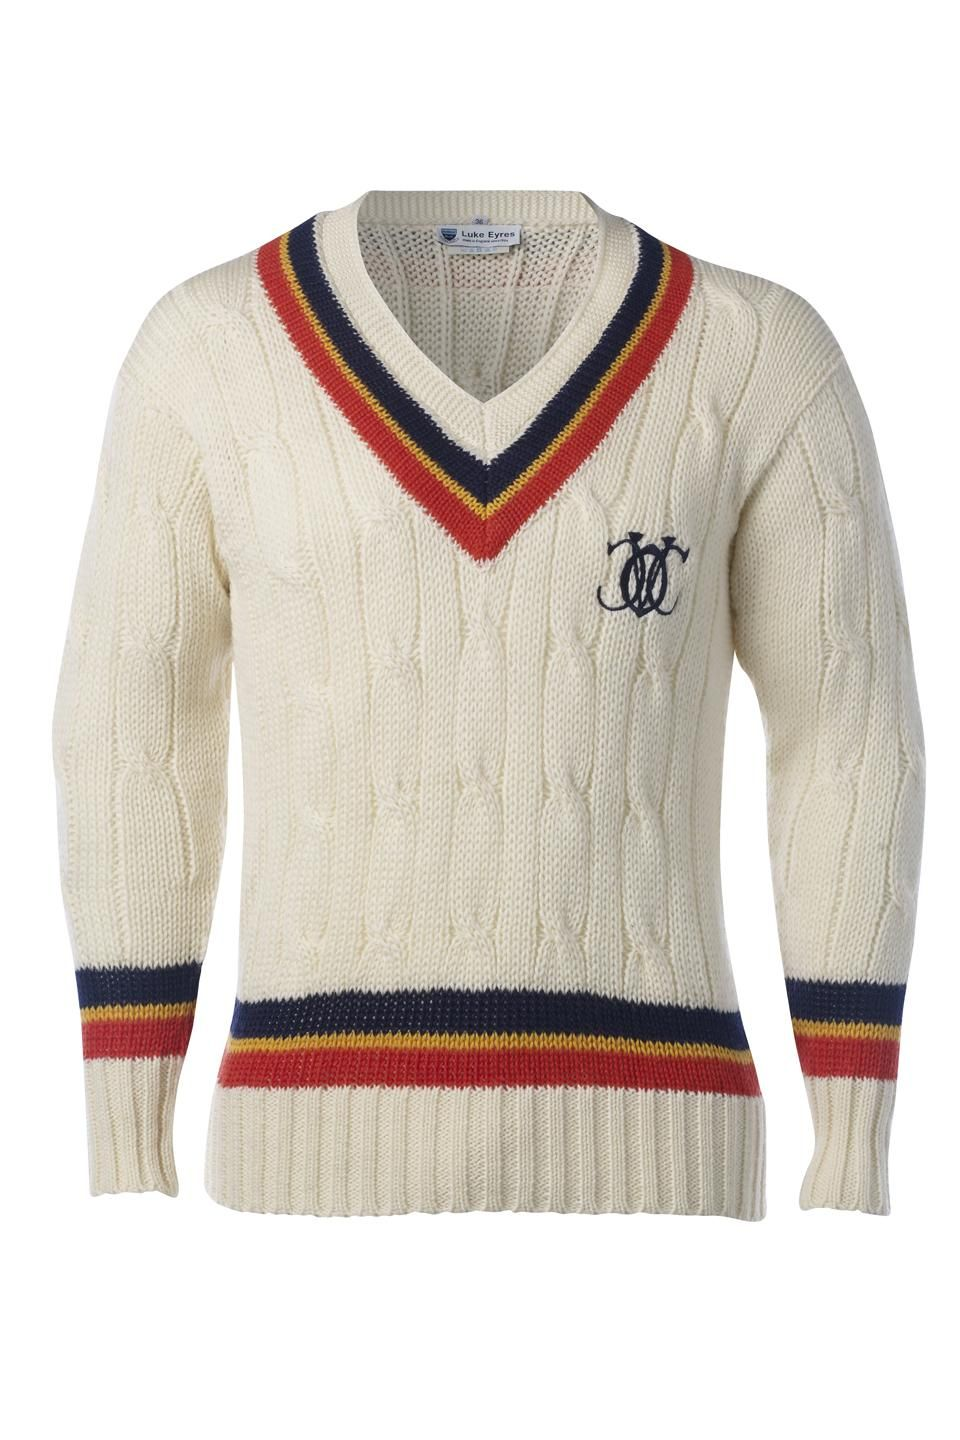 Oxford Cricket Sweater